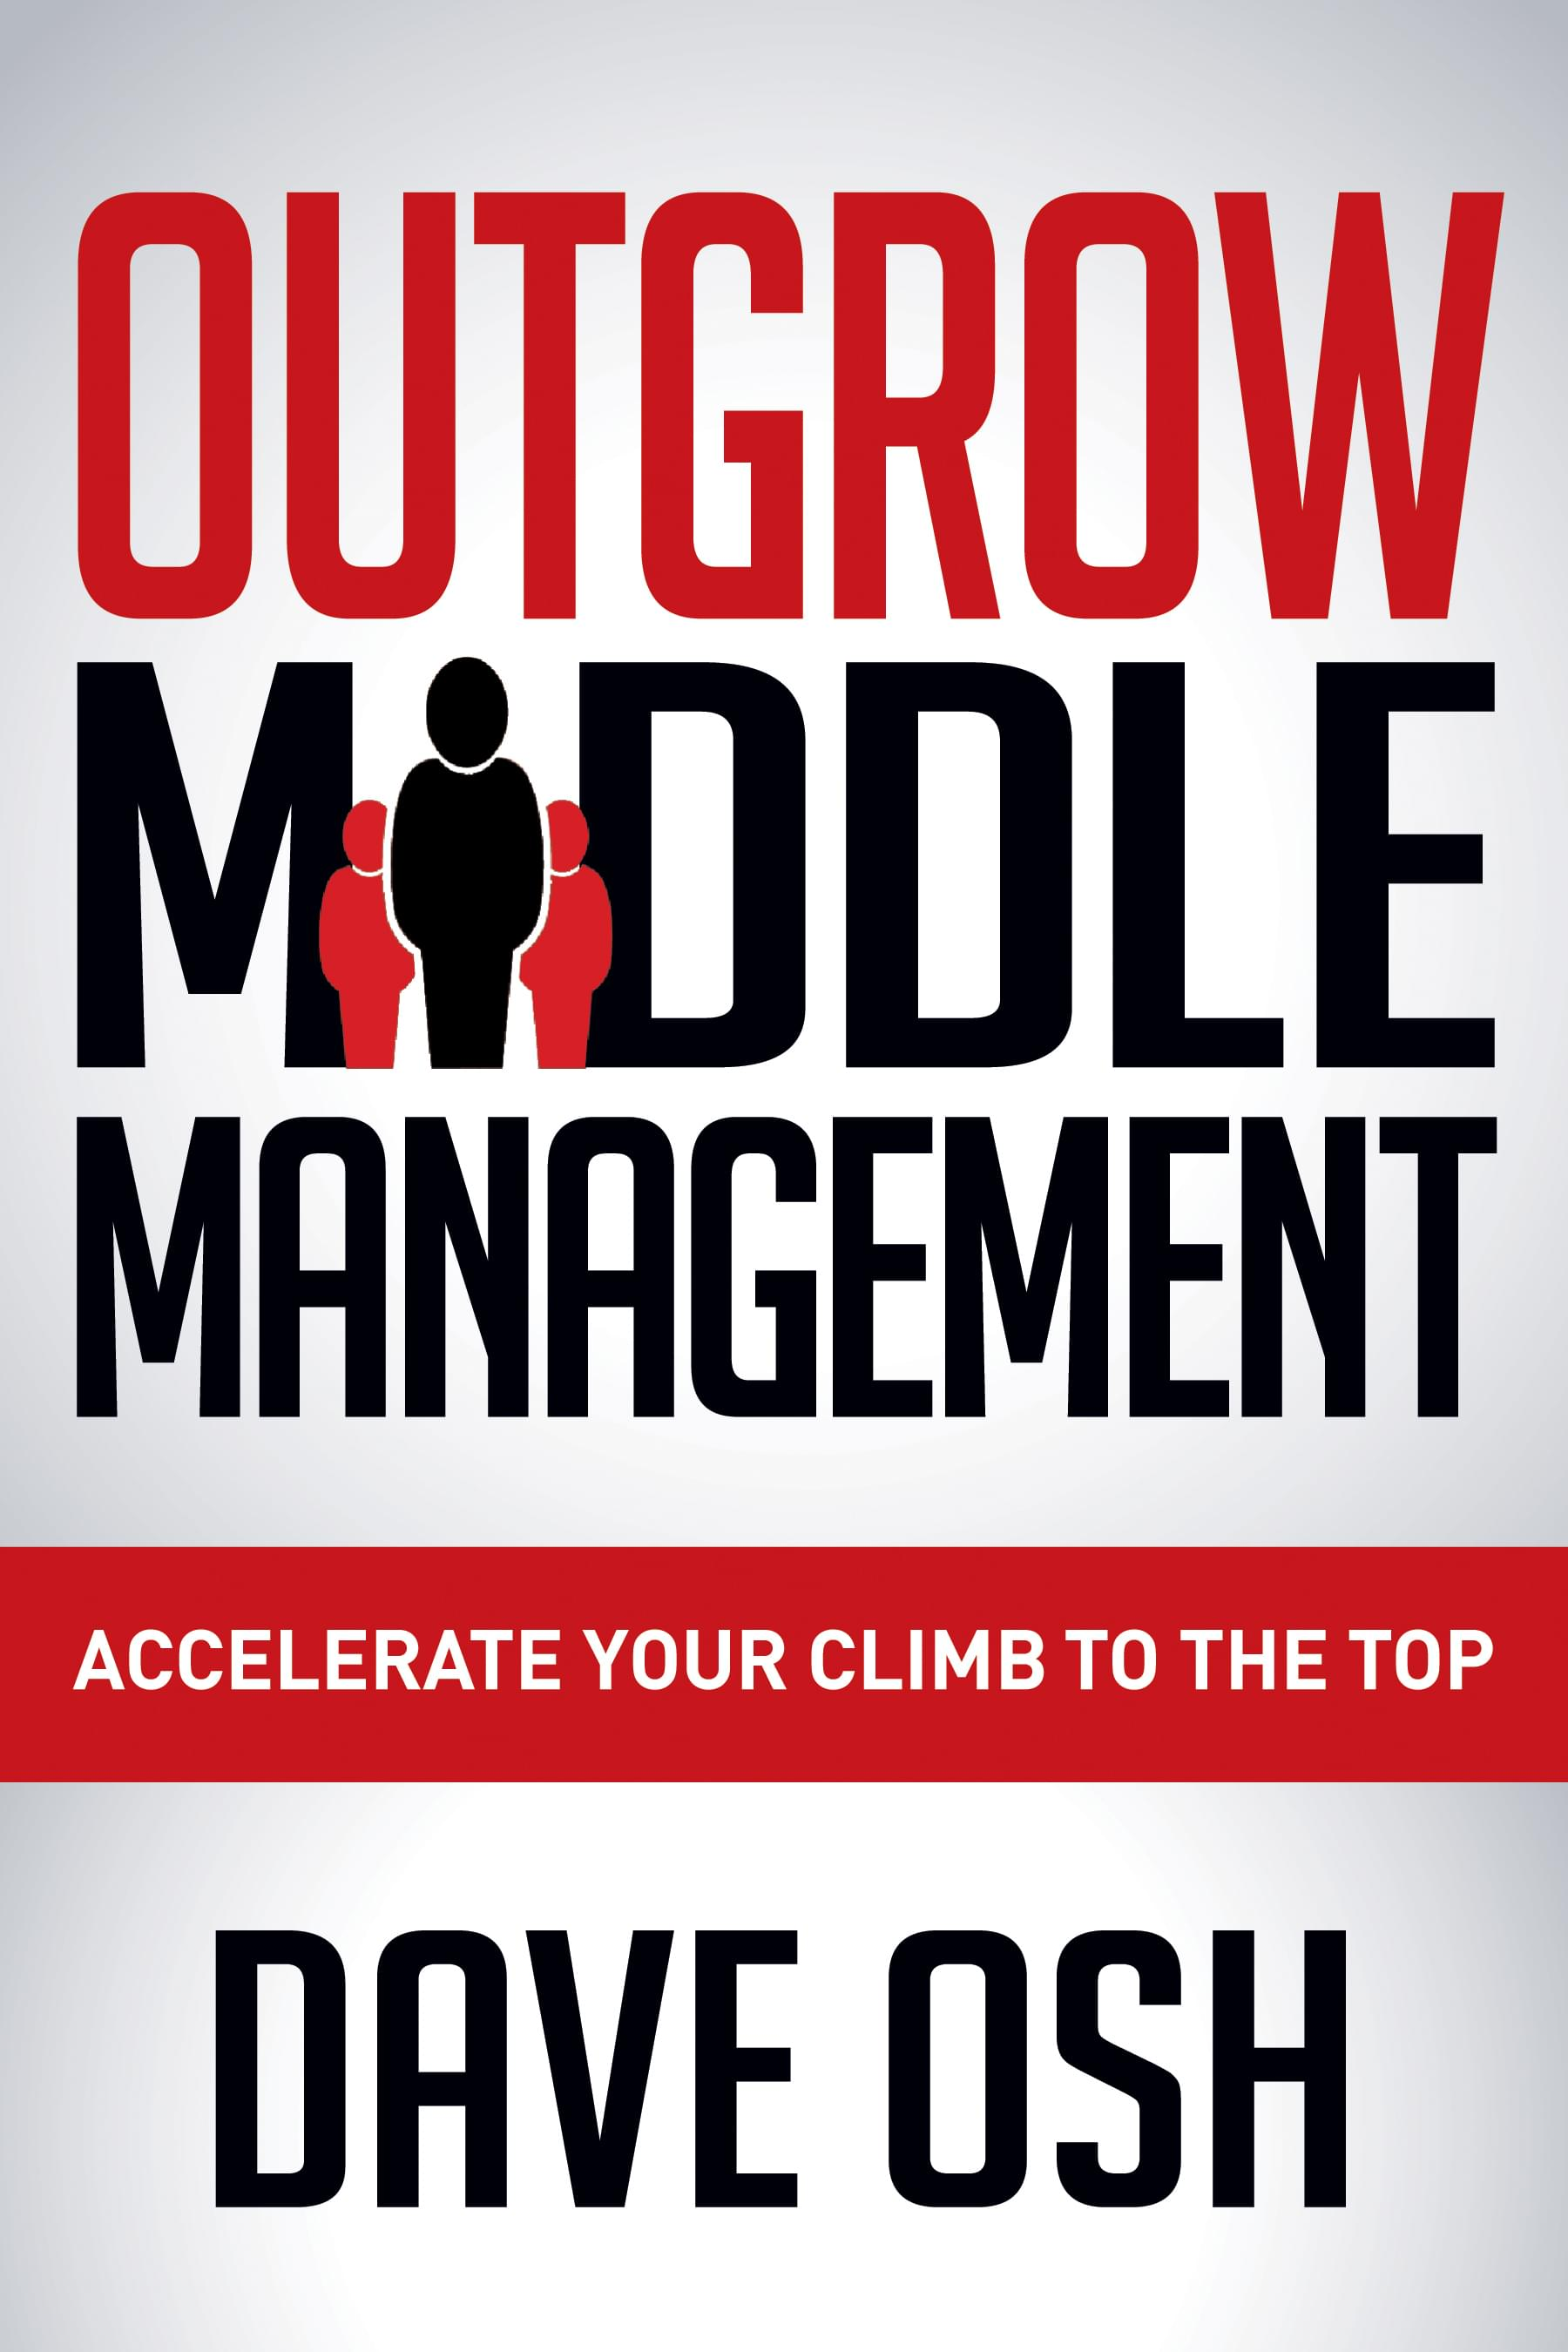 Outgrow Middle Management